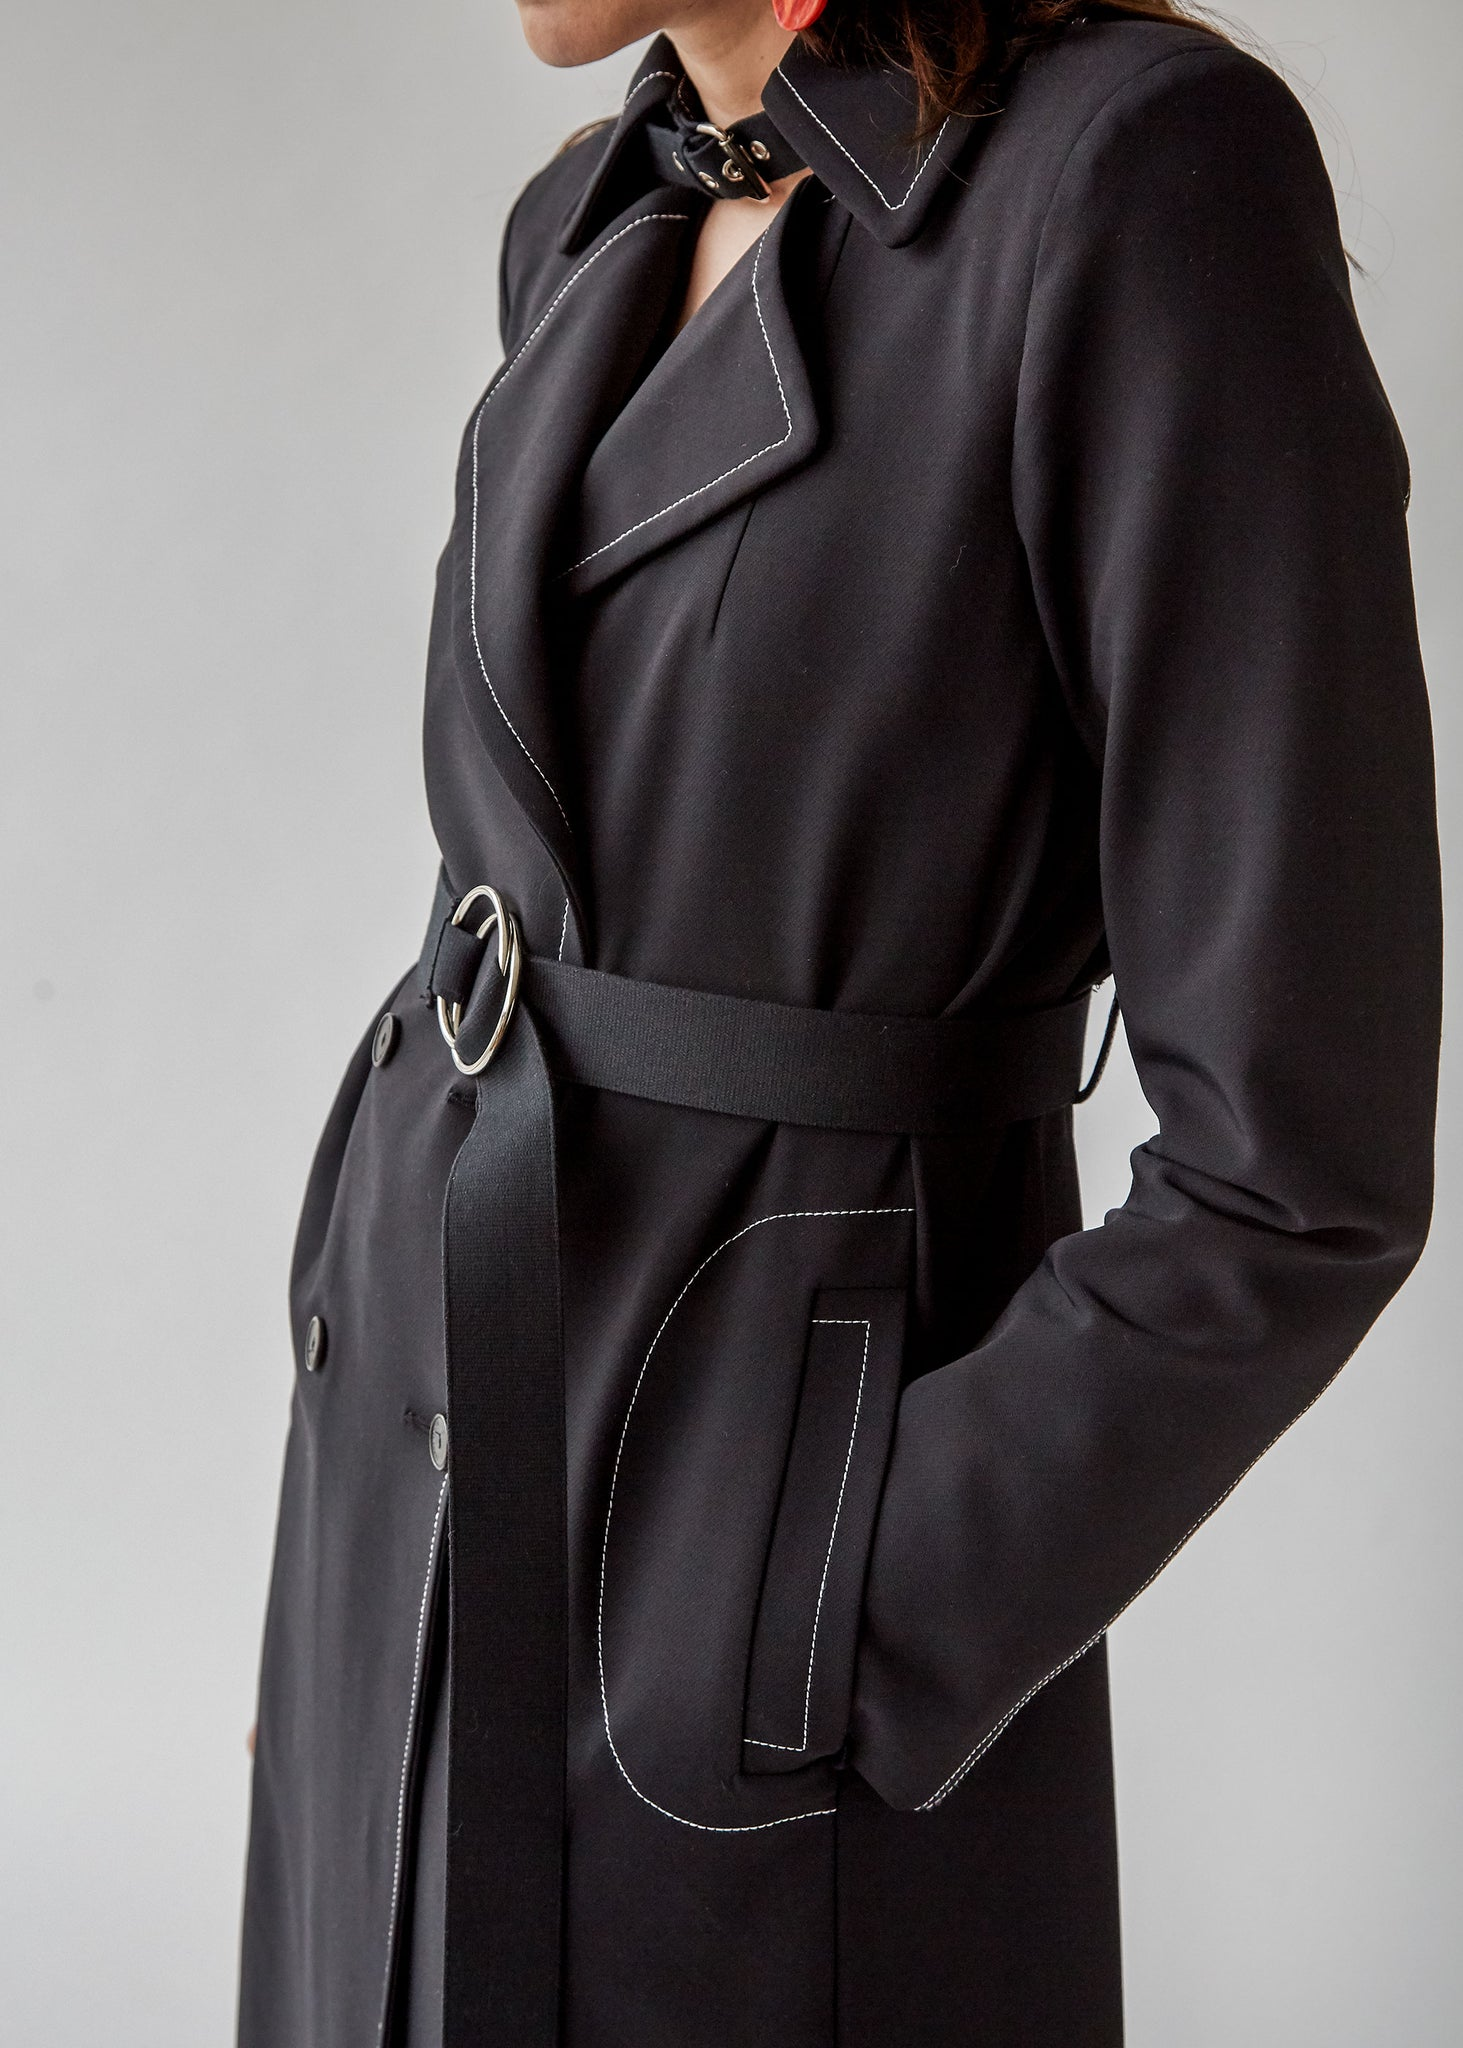 Roe Trench in Black